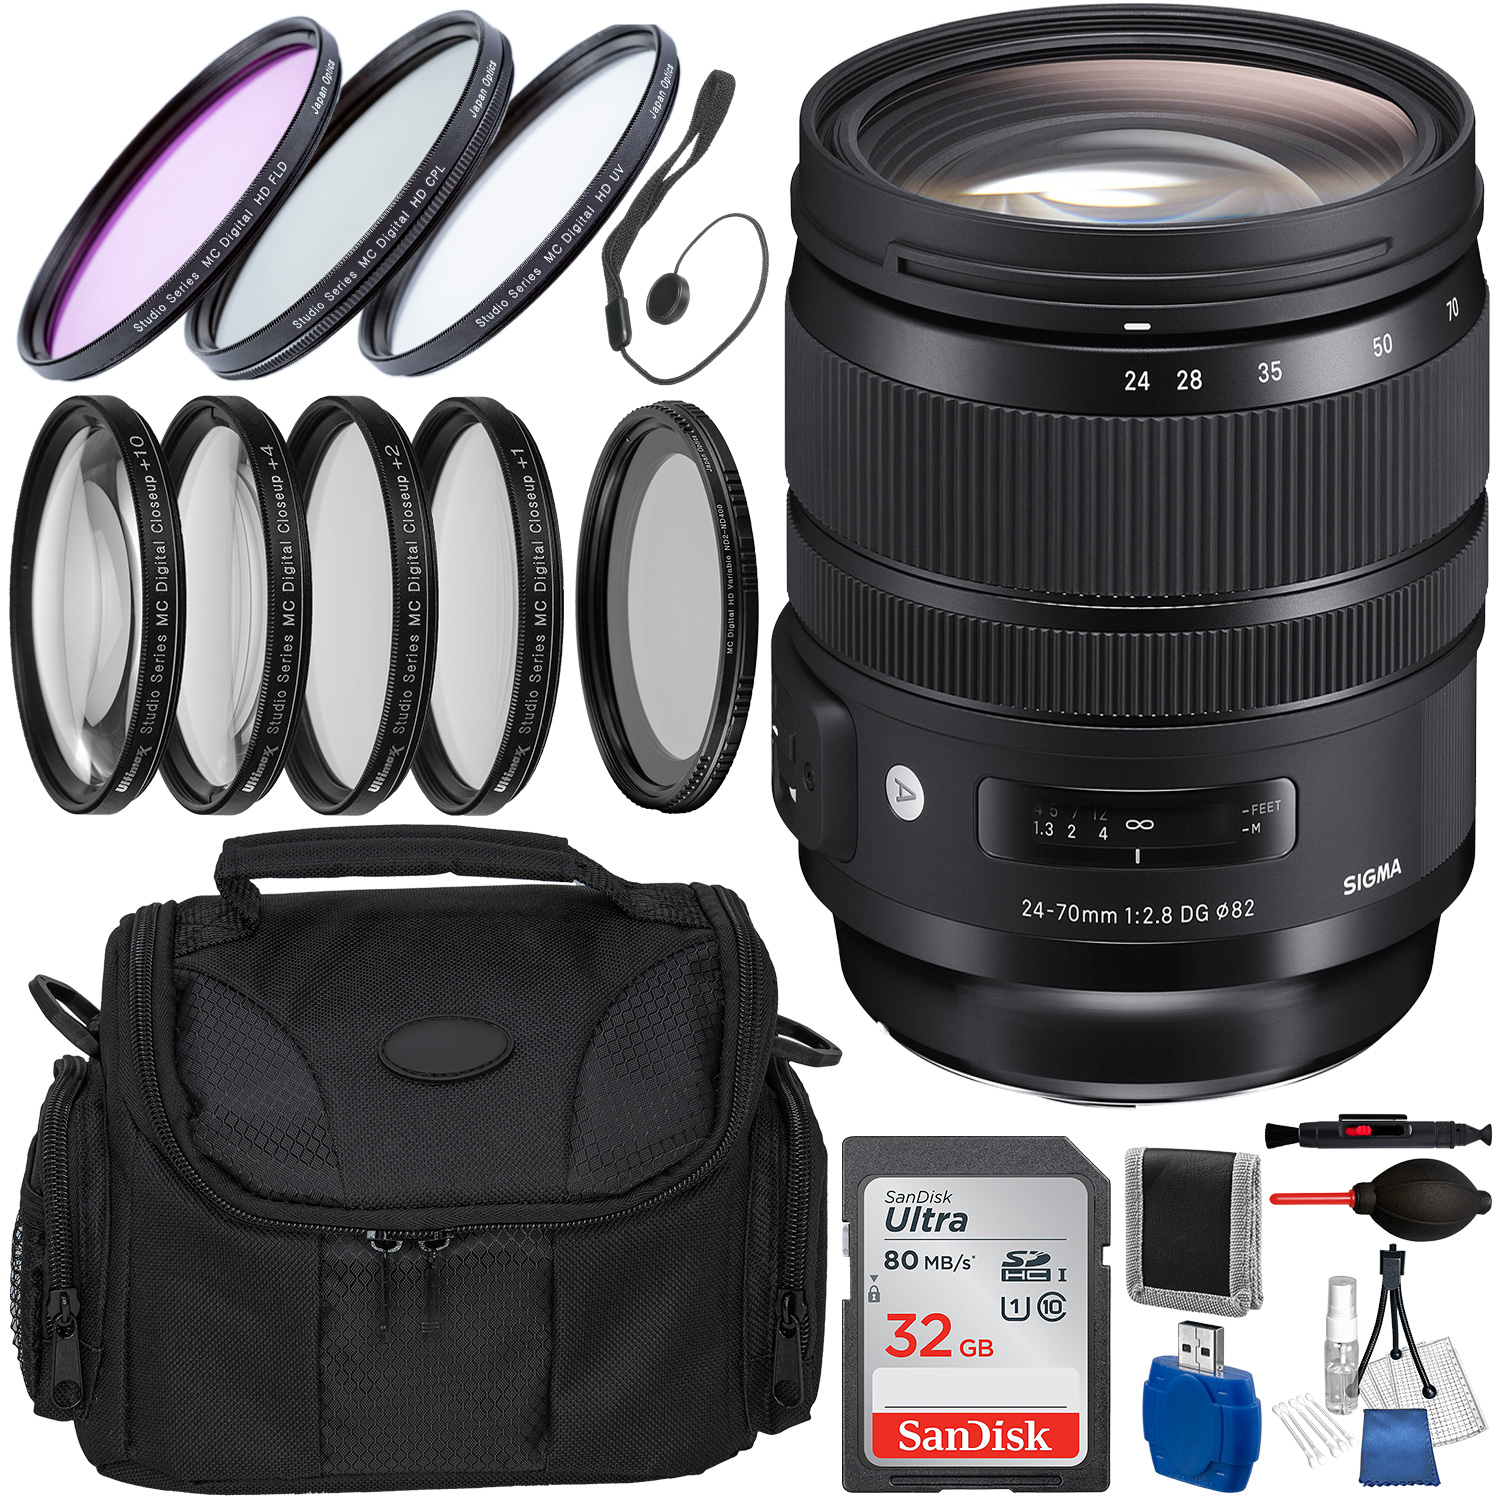 Sigma 24-70mm f/2.8 DG OS HSM Art Lens for Nikon F and Accessory Bundle